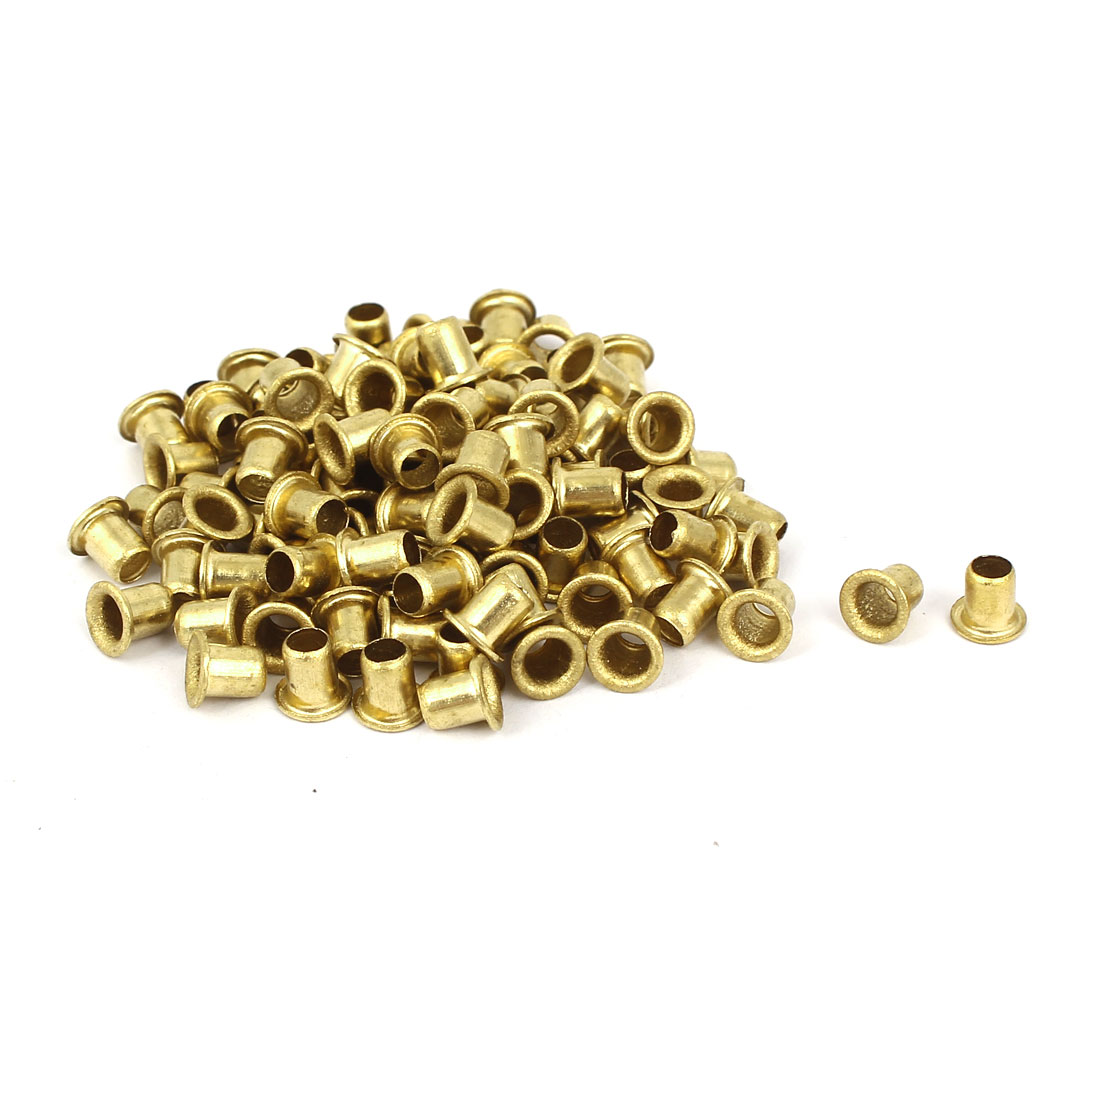 4mm x 5mm Double Sided Hollow Rivets Grommets Tool 100 Pcs